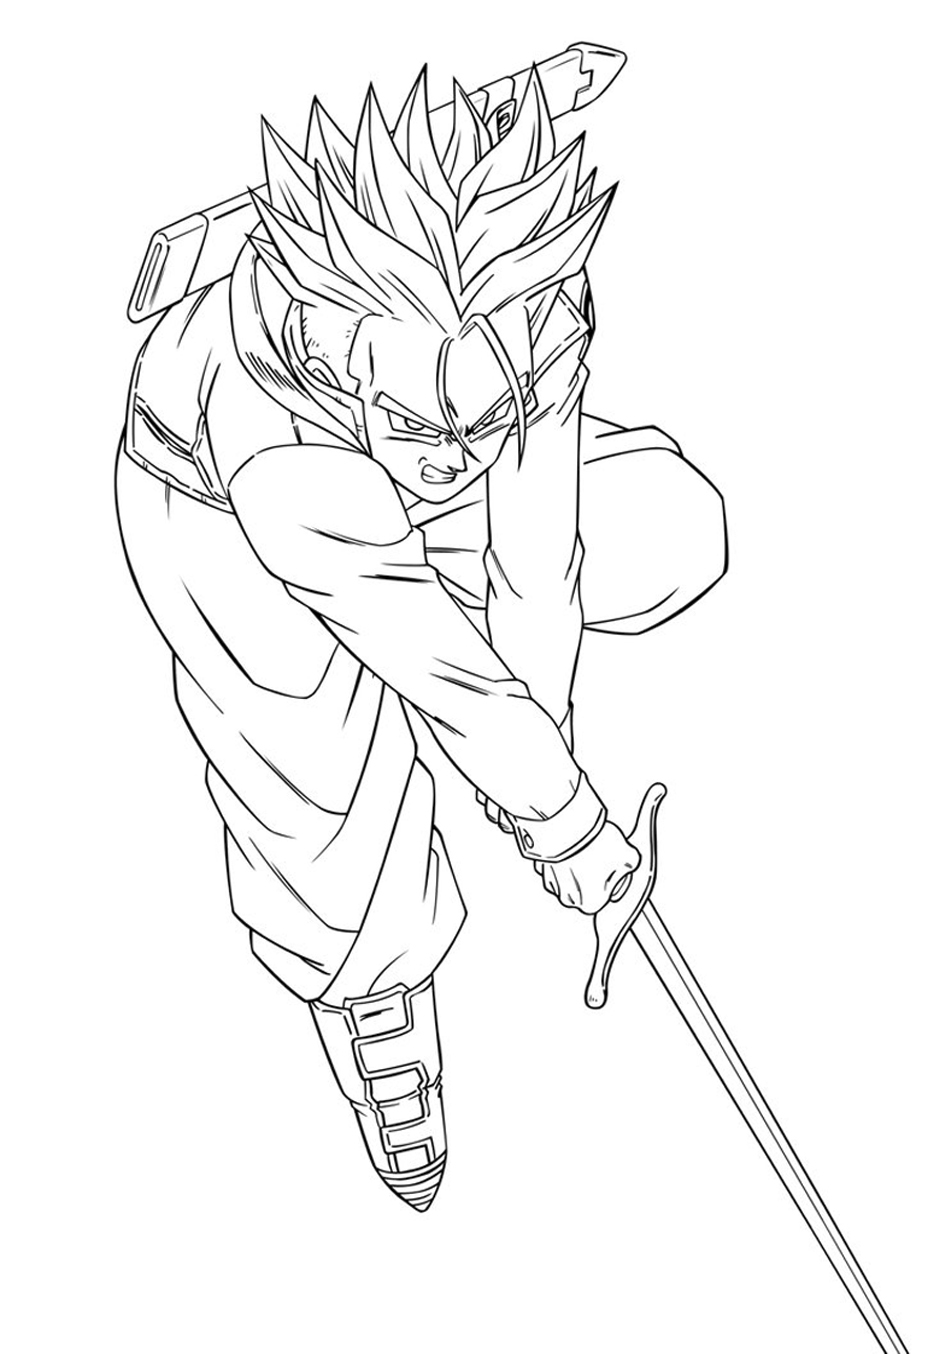 Dragon Ball Z Goten Coloring Pages - Dragon Ball Coloring Pages ... | 1354x945